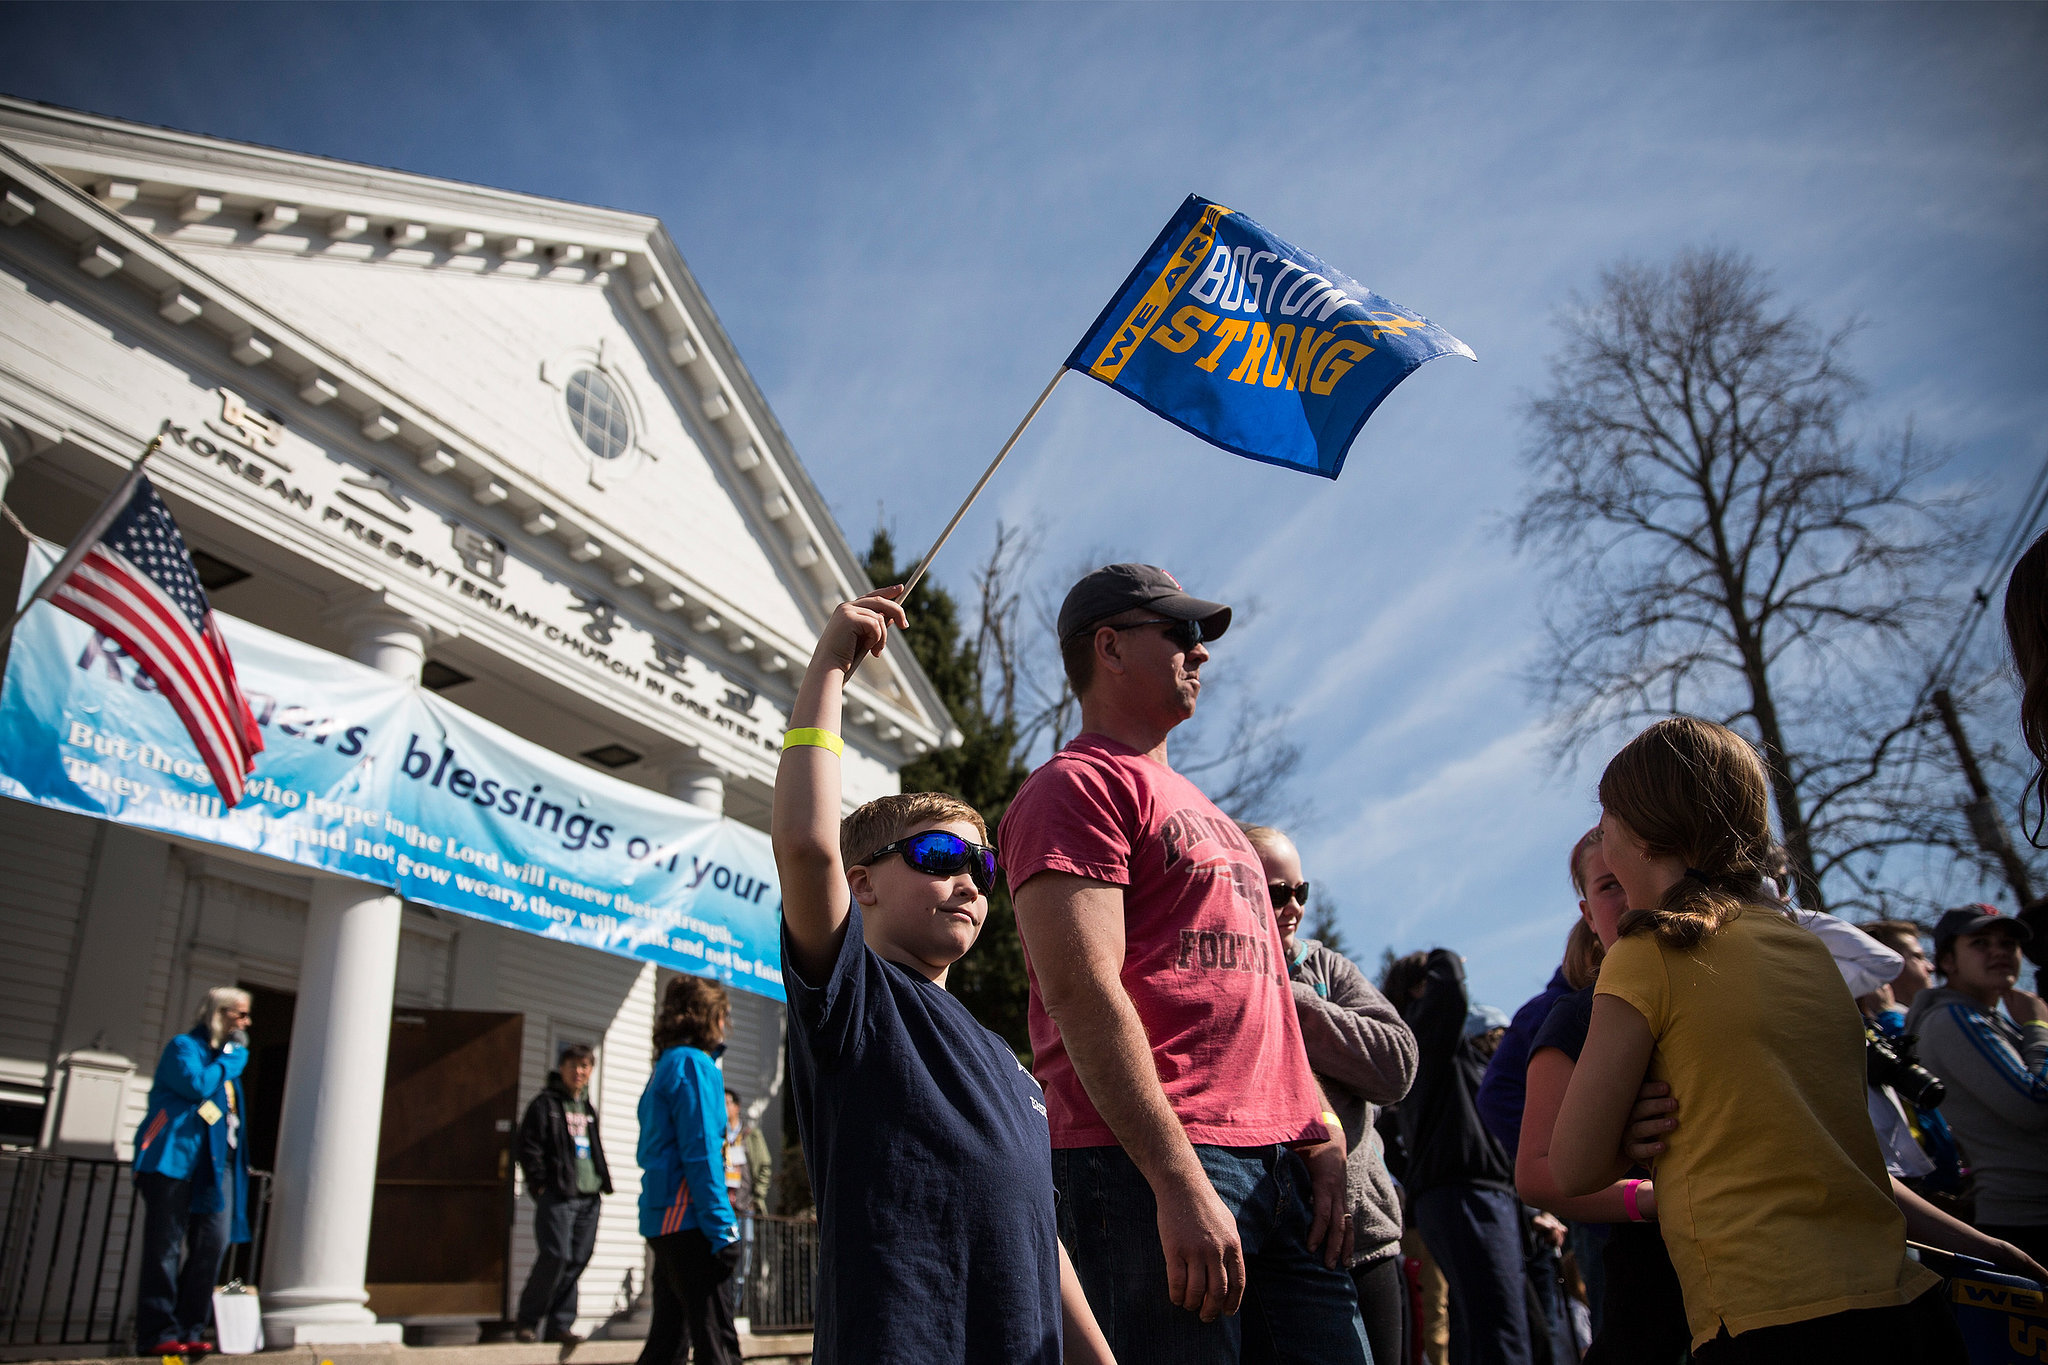 """An 8-year-old boy waved a """"Boston strong"""" flag."""